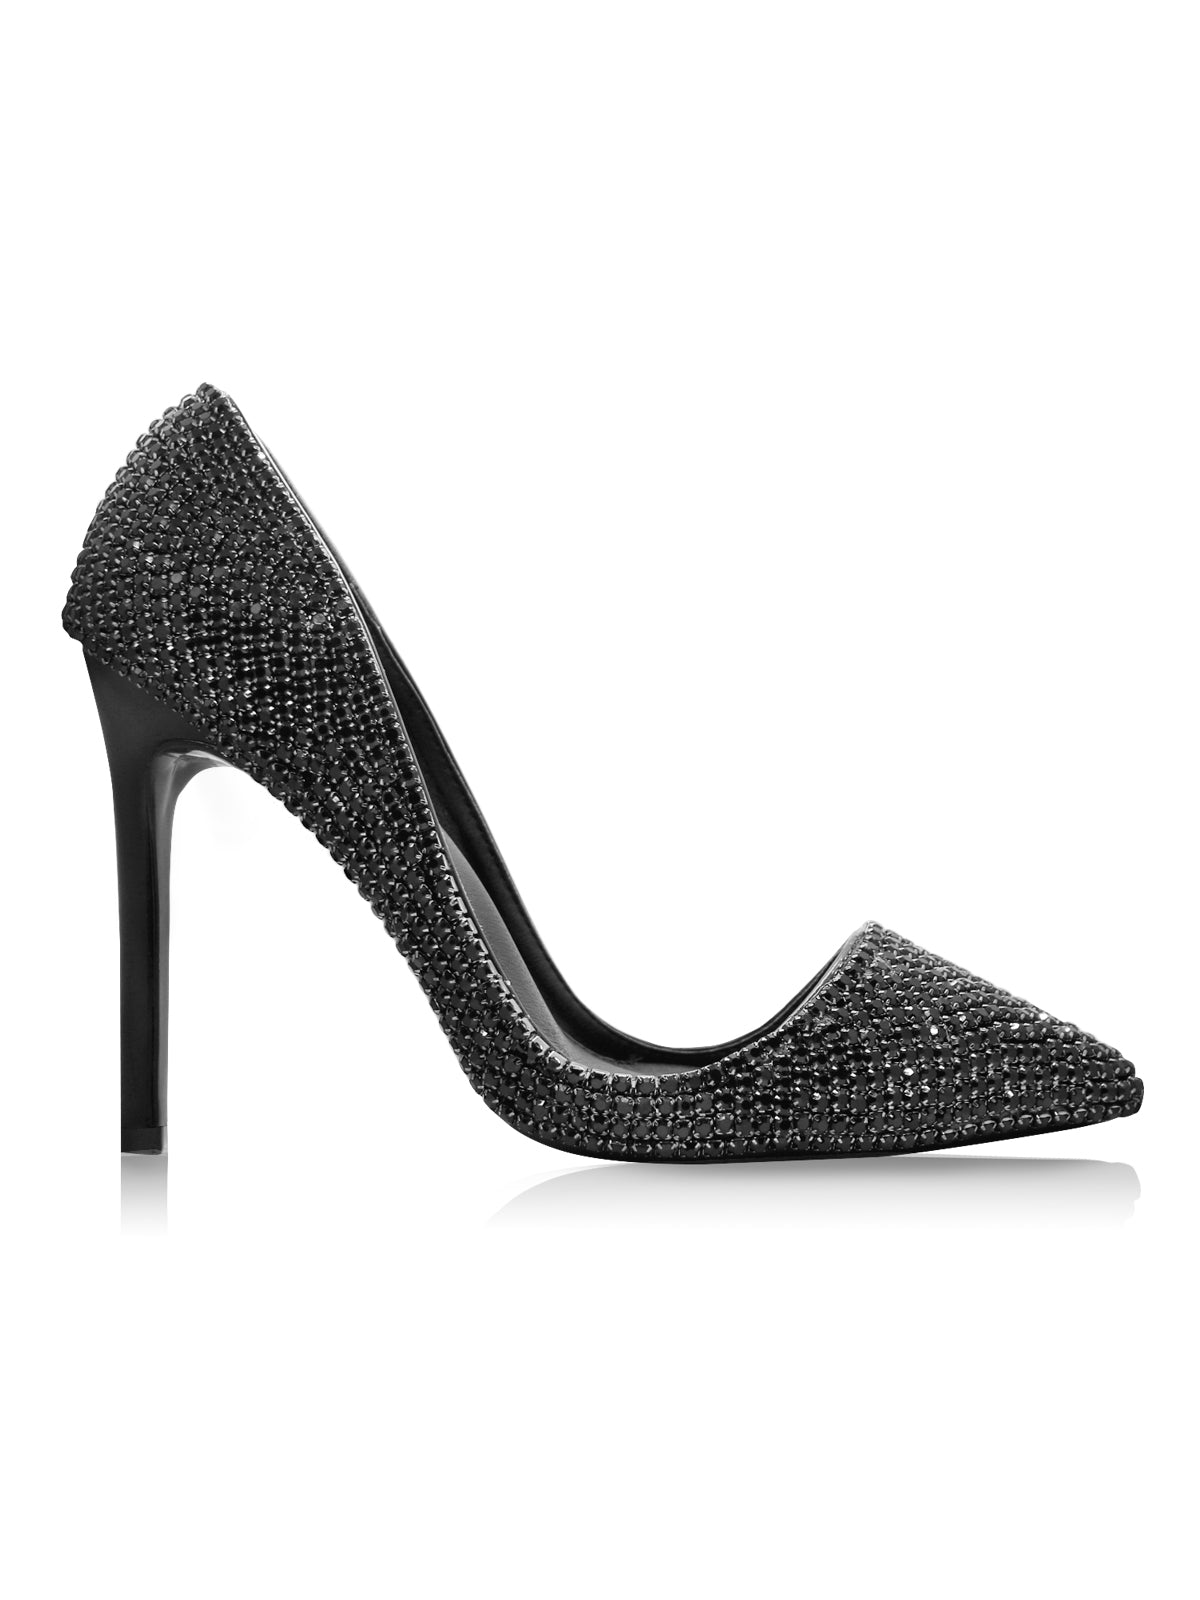 Roberto Ruivo Dubai Fashion High Heel Stilettos Black Crystals Pointed Toe Pumps